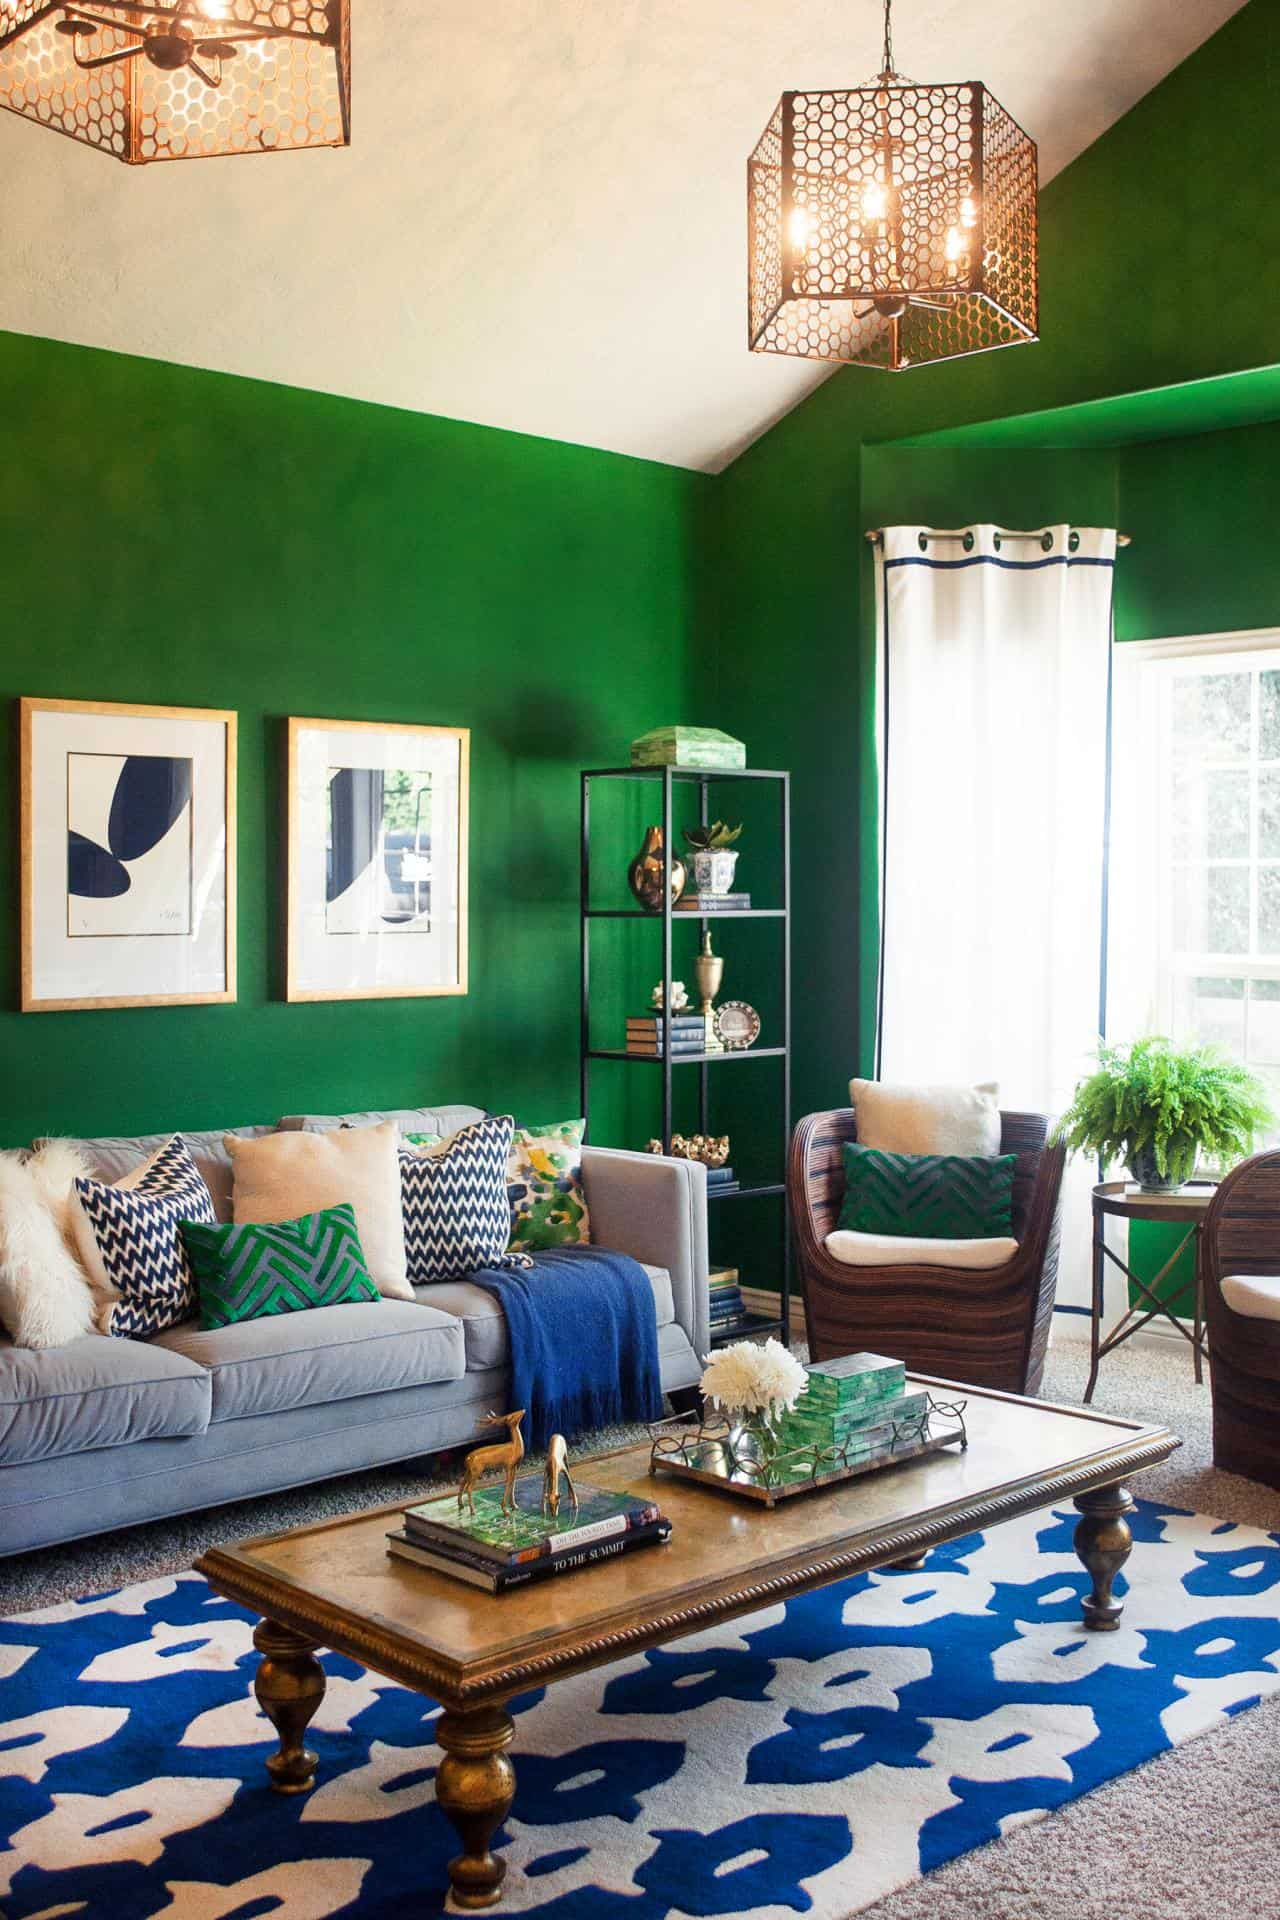 kelly green Retro Hues That Are Making A Huge Decor Comeback